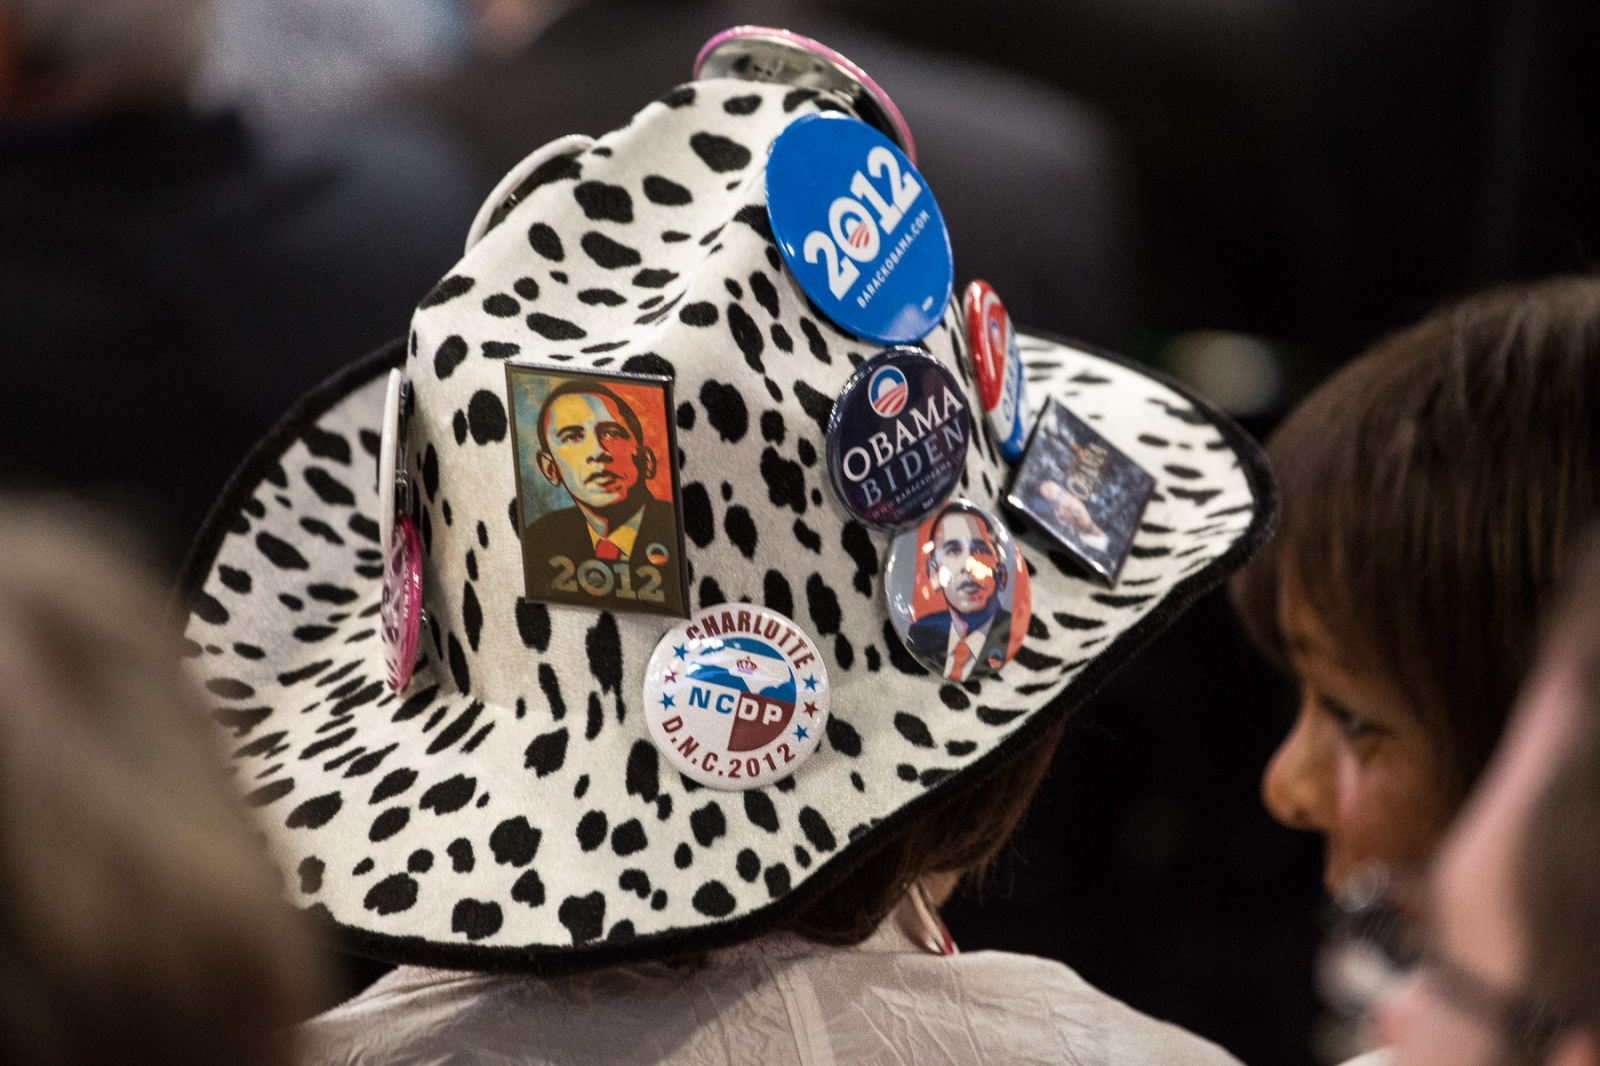 Delegate Gloria Goodwin's hat decorated with buttons at the 2012 Democratic National Convention.